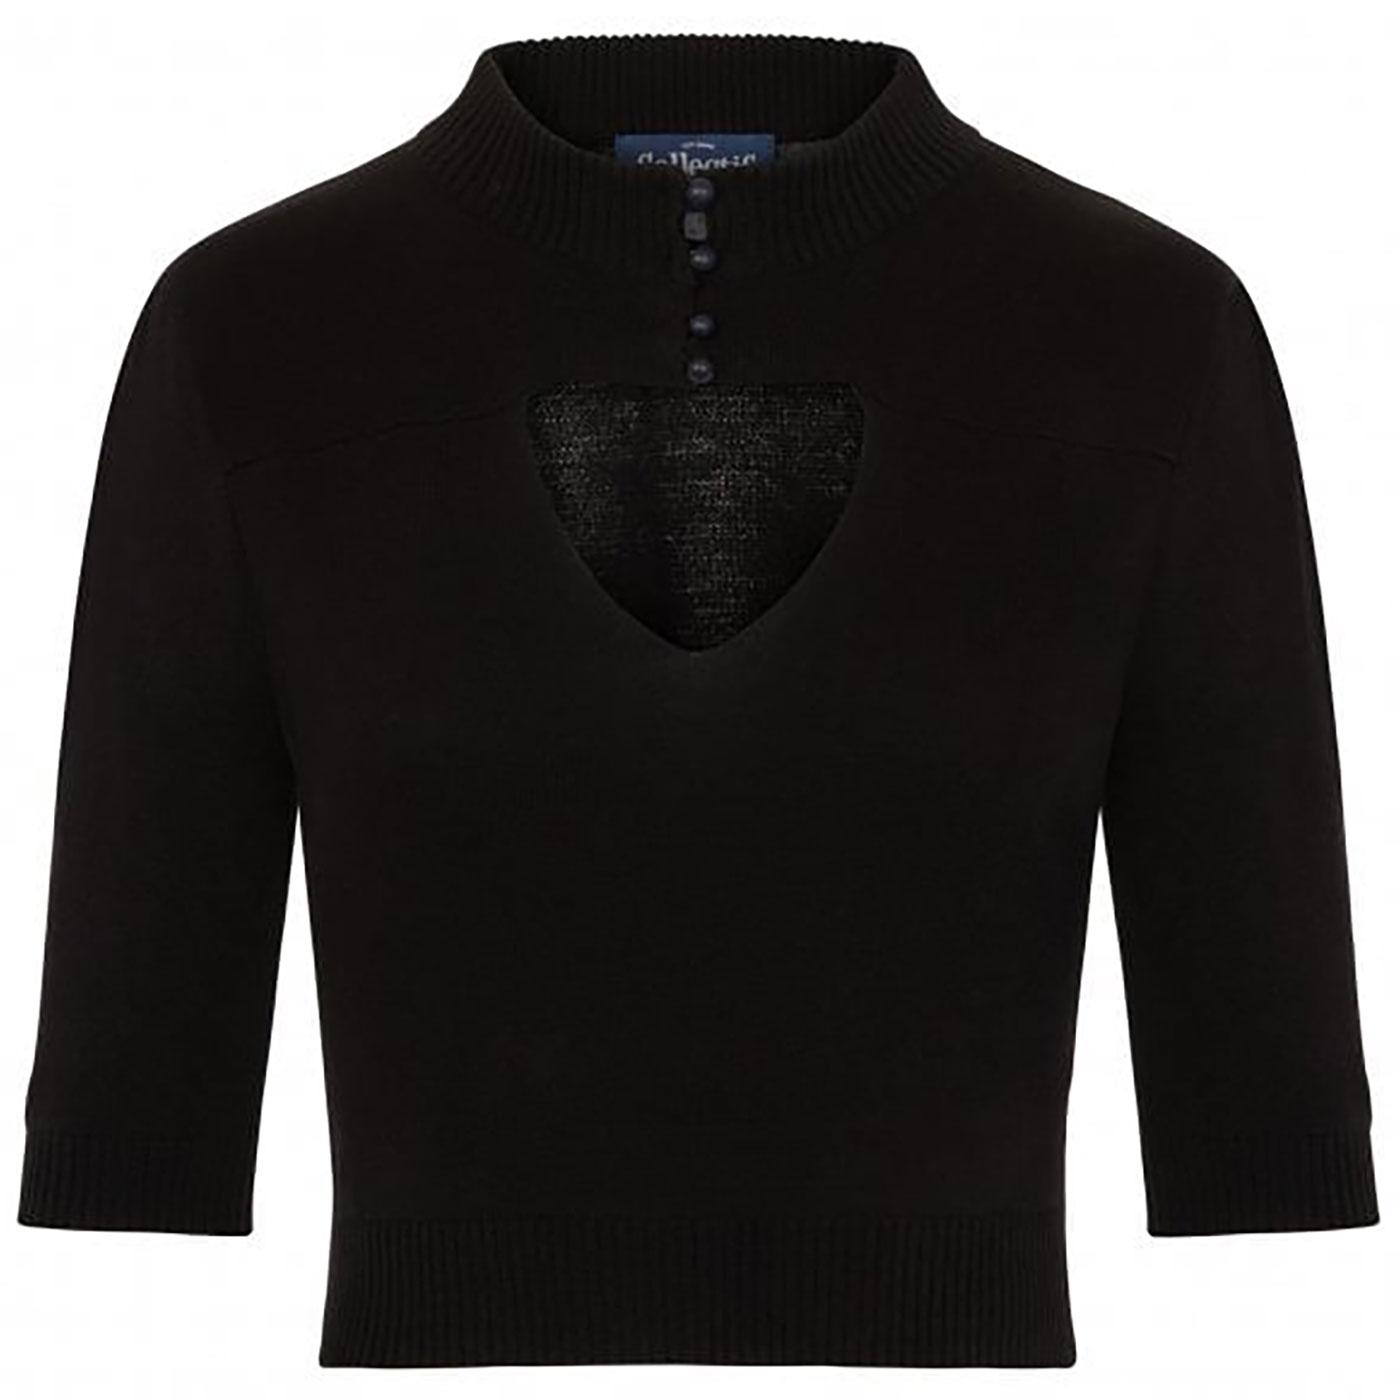 Shirley COLLECTIF Cut Out Heart Knitted Top Black